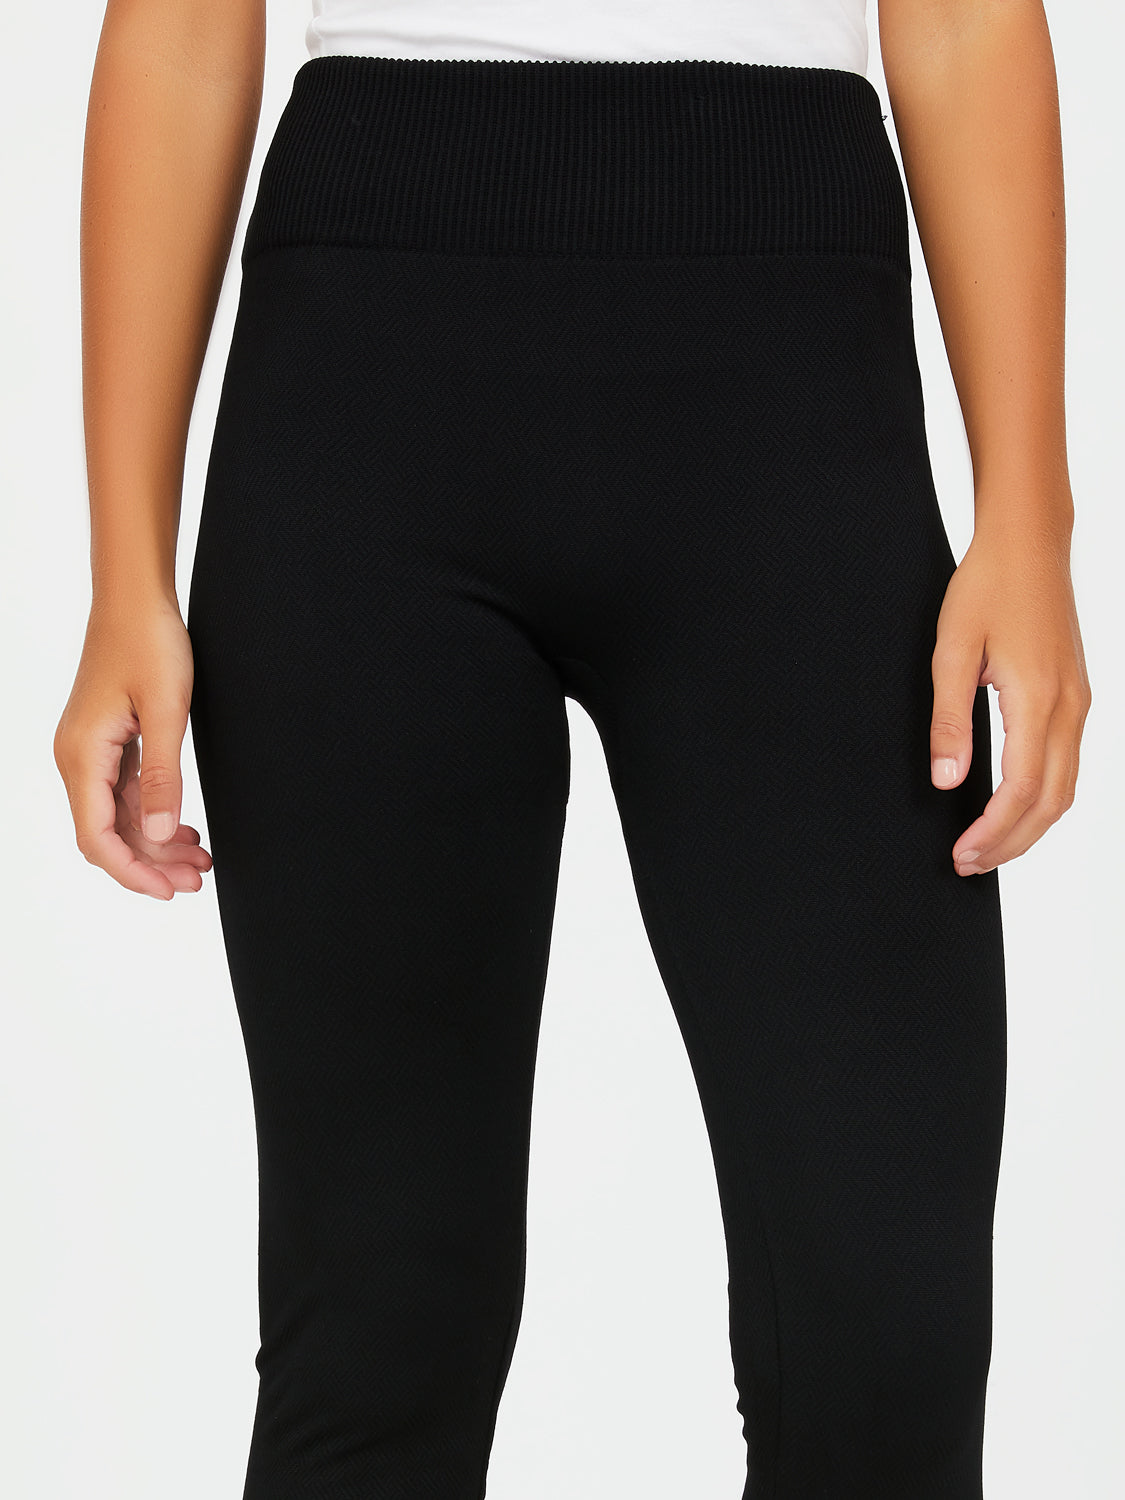 Jacquard Cable Knit Fleece Leggings